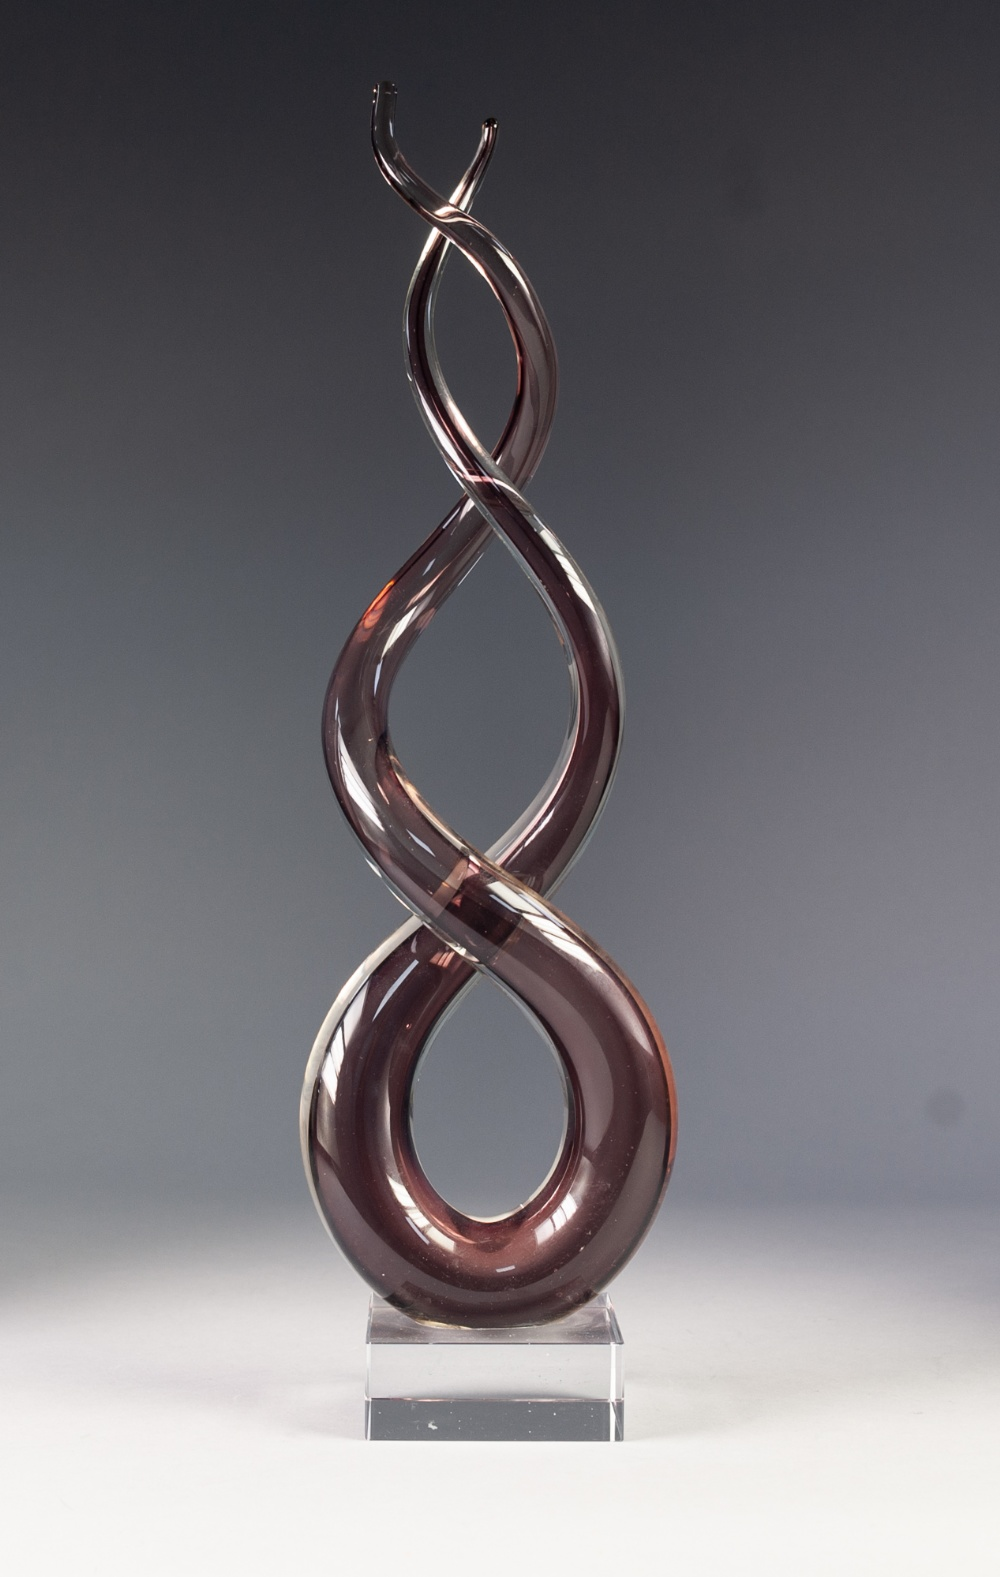 Lot 31 - MURANO PALE PINK CASED GLASS 'LOVE KNOT' SCULPTURE, raised on a clear glass oblong base, unmarked,